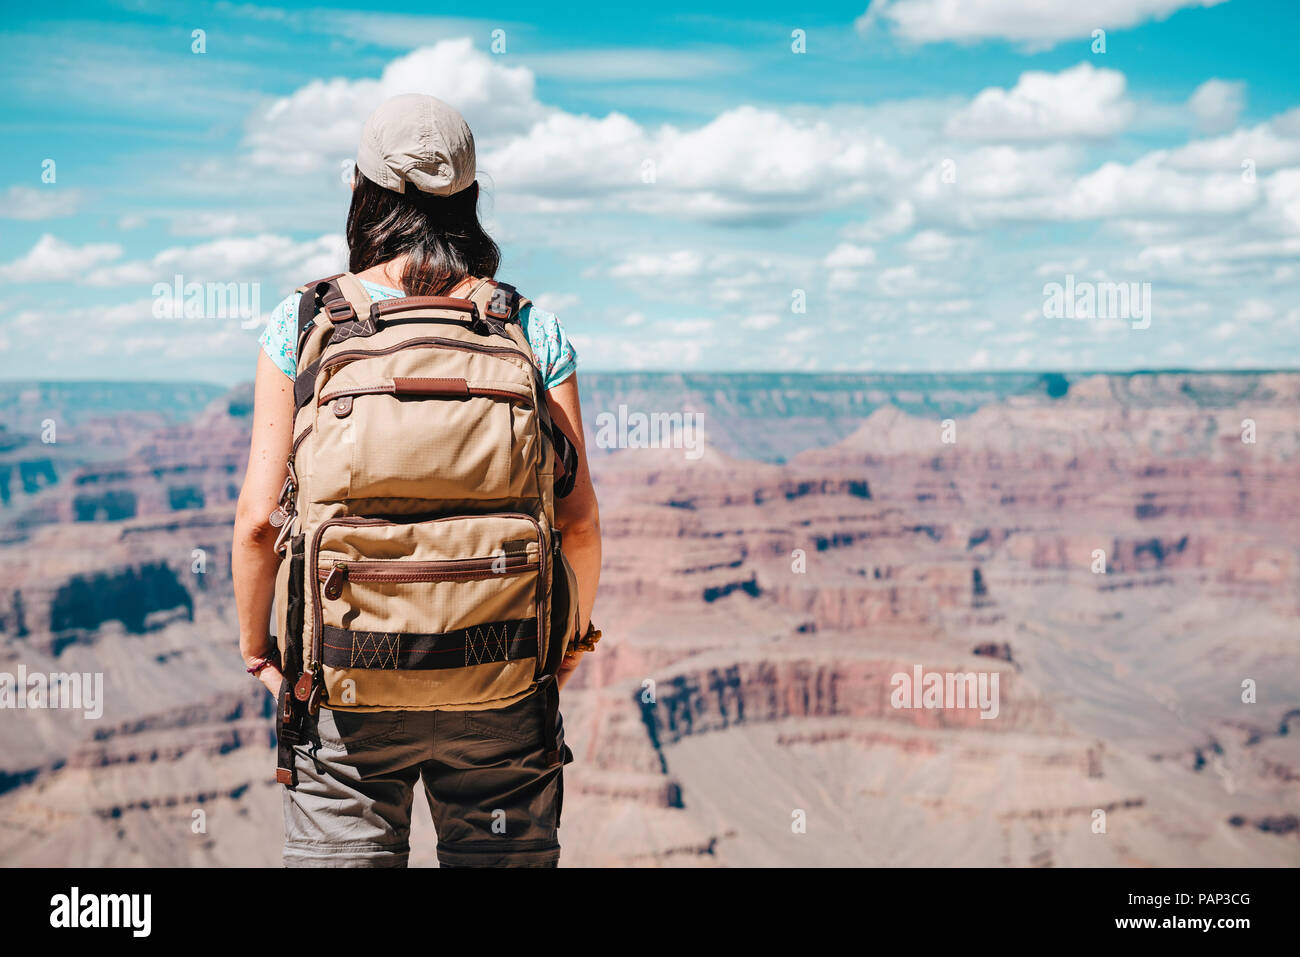 USA, Arizona, Grand Canyon National Park, Young woman with backpack exploring and enjoying the landscape - Stock Image